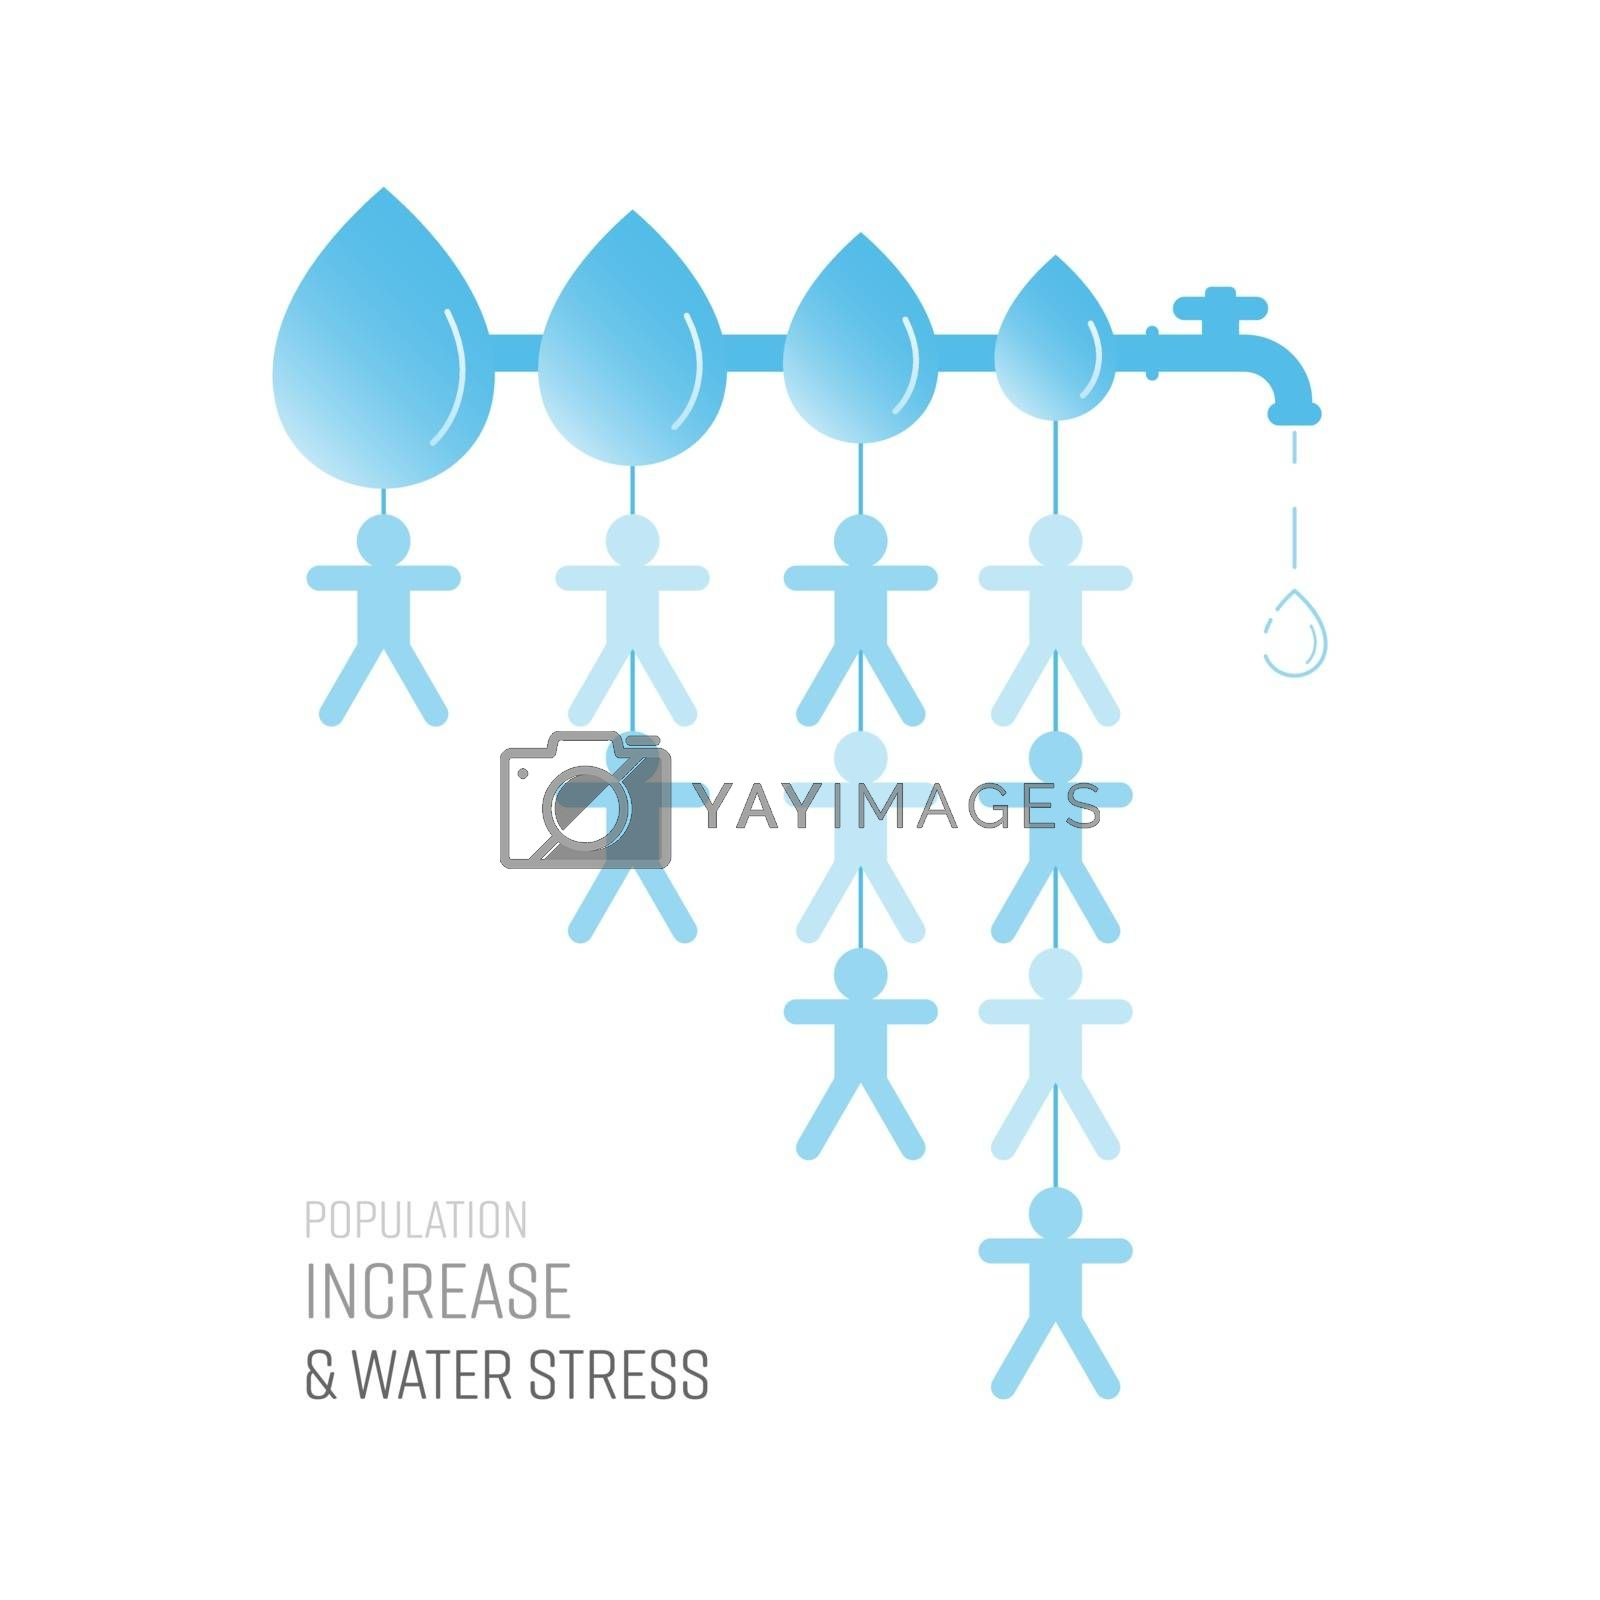 Relation between population increase & water stress. Water drops become smaller on tap water, human paper cut mobiles as a gimmick of population growth. Vector illustration outline flat design style.